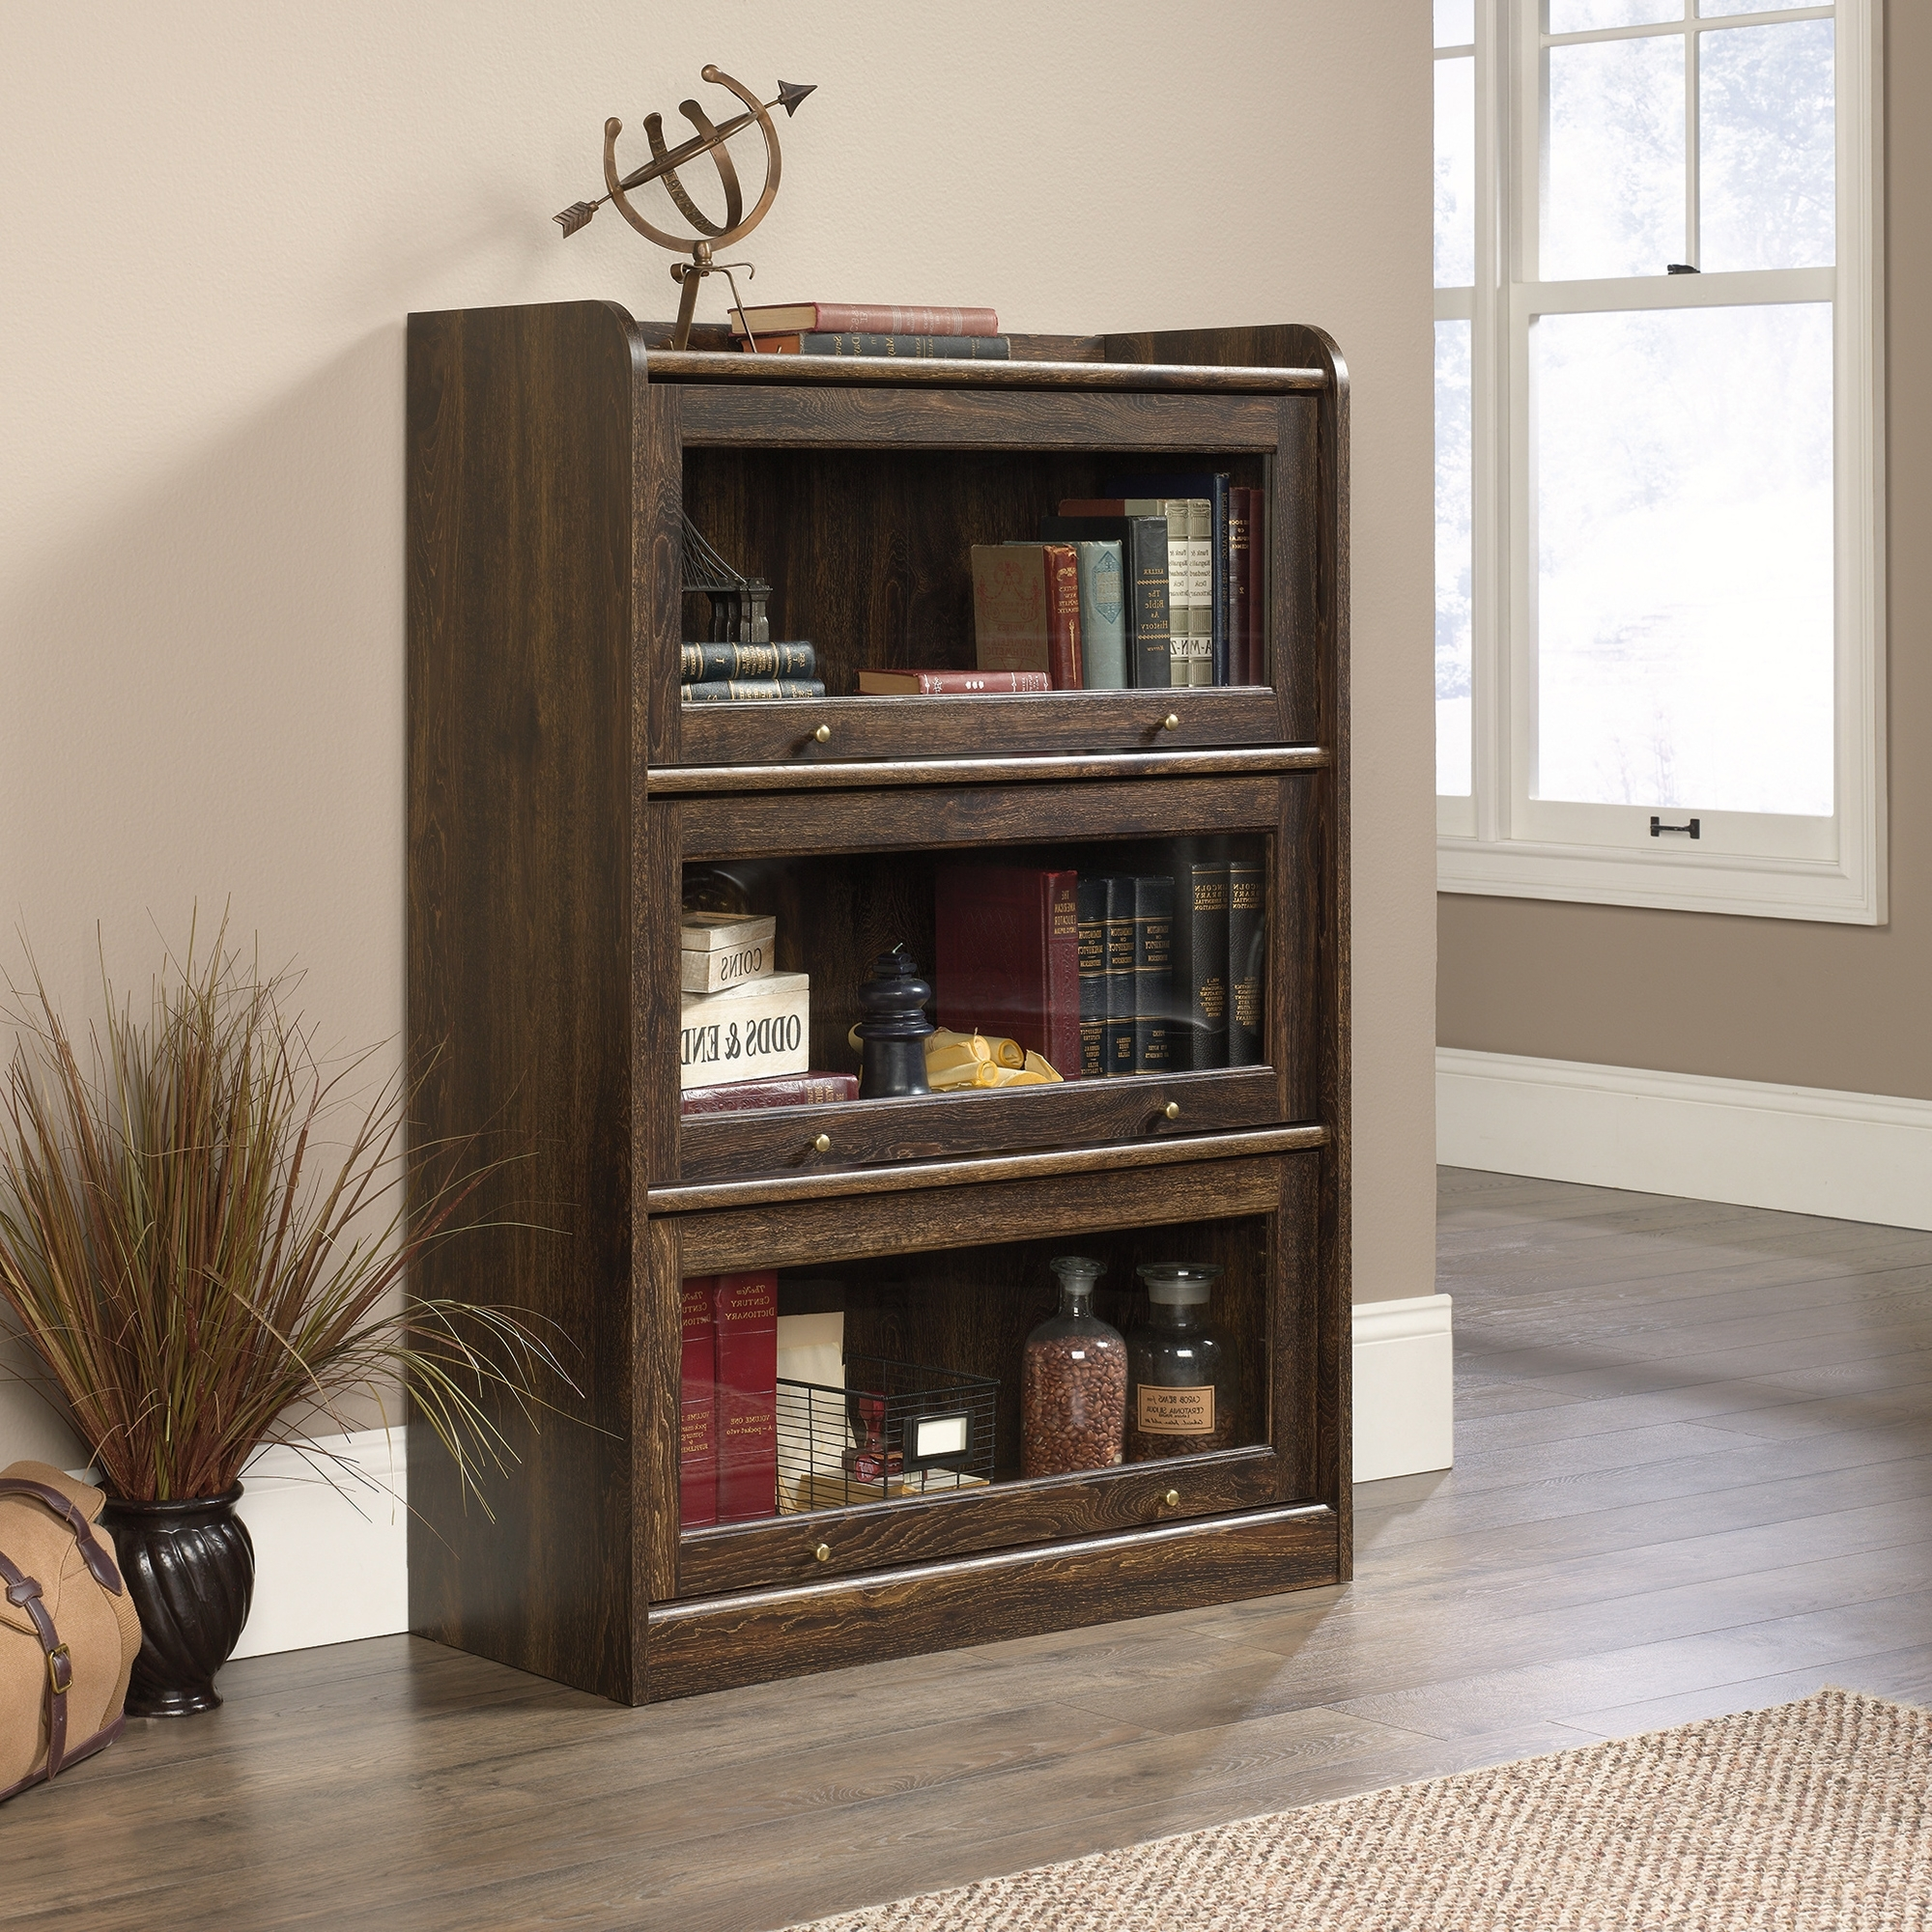 Barrister Lane Bookcase (422790) – Sauder Within Latest Barrister Lane Bookcases (View 2 of 15)